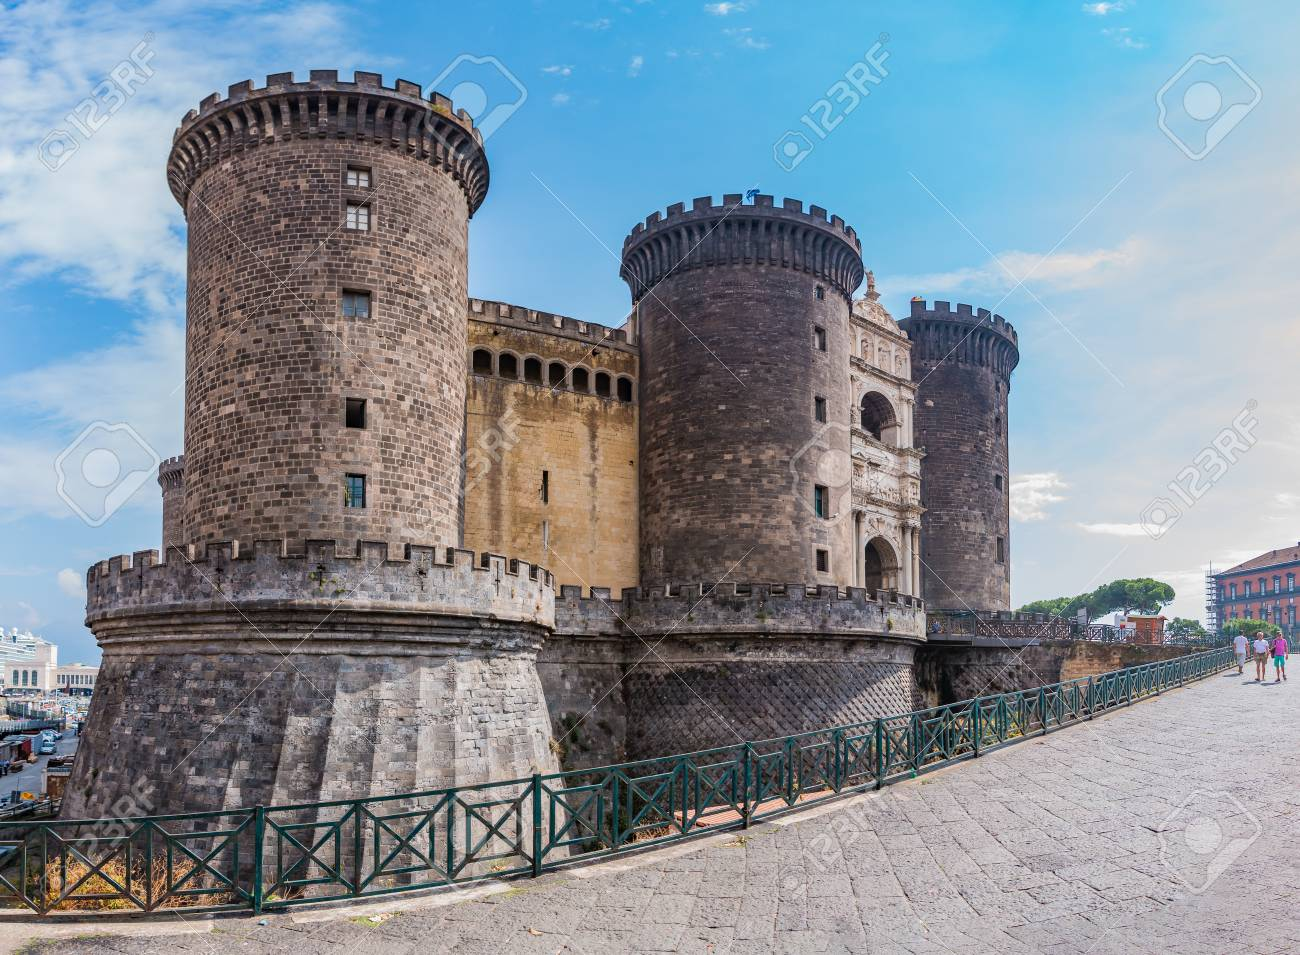 A panorama of Castel Nuovo taen from up close (Naples). - 109448434